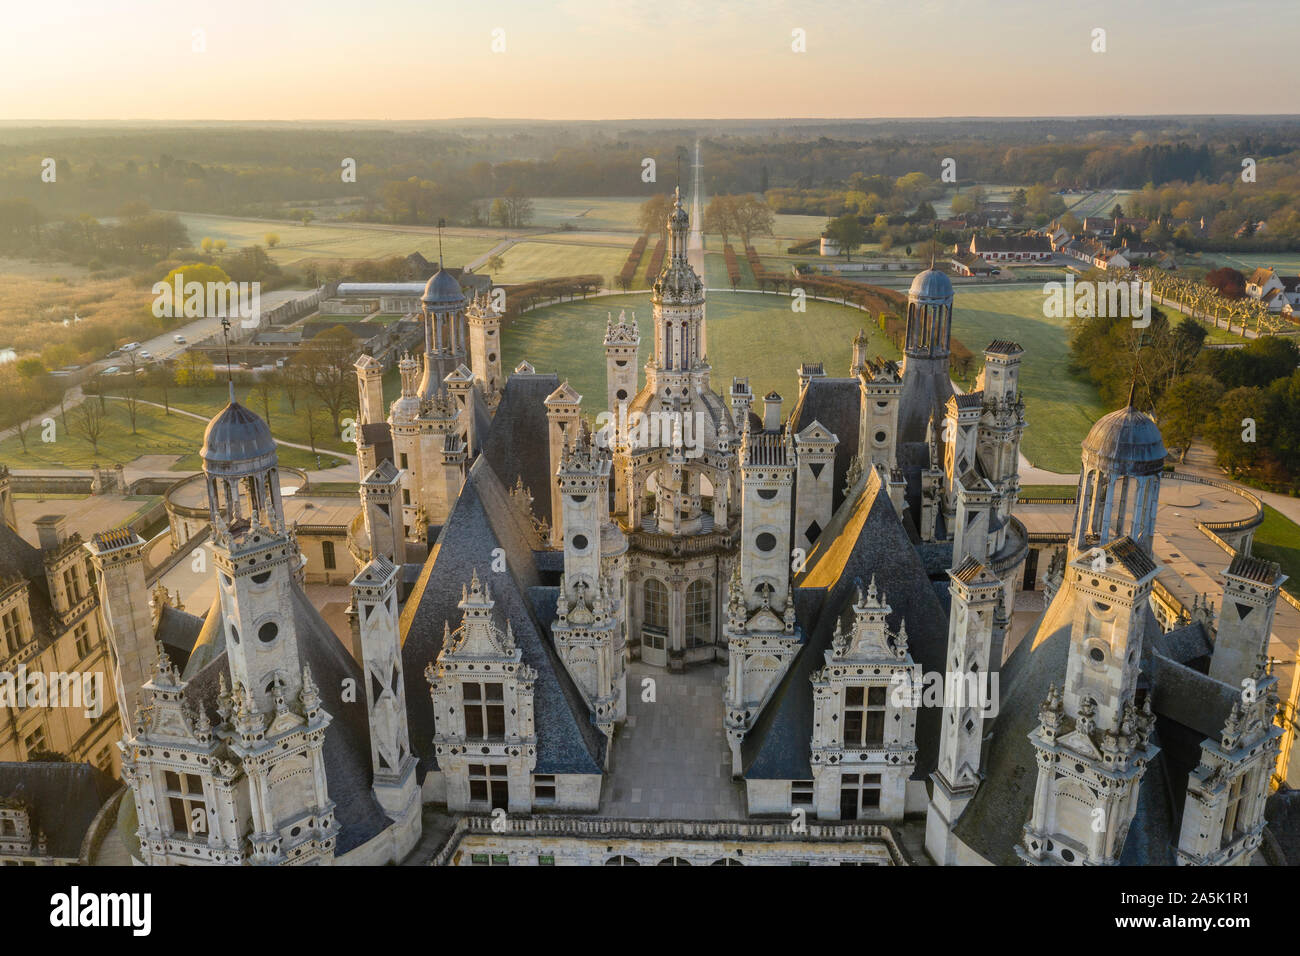 France, Loir et Cher, Loire Valley listed as World Heritage by UNESCO, Chambord, royal castle, views on the roofs and chimneys, sunrise (aerial view) Stock Photo